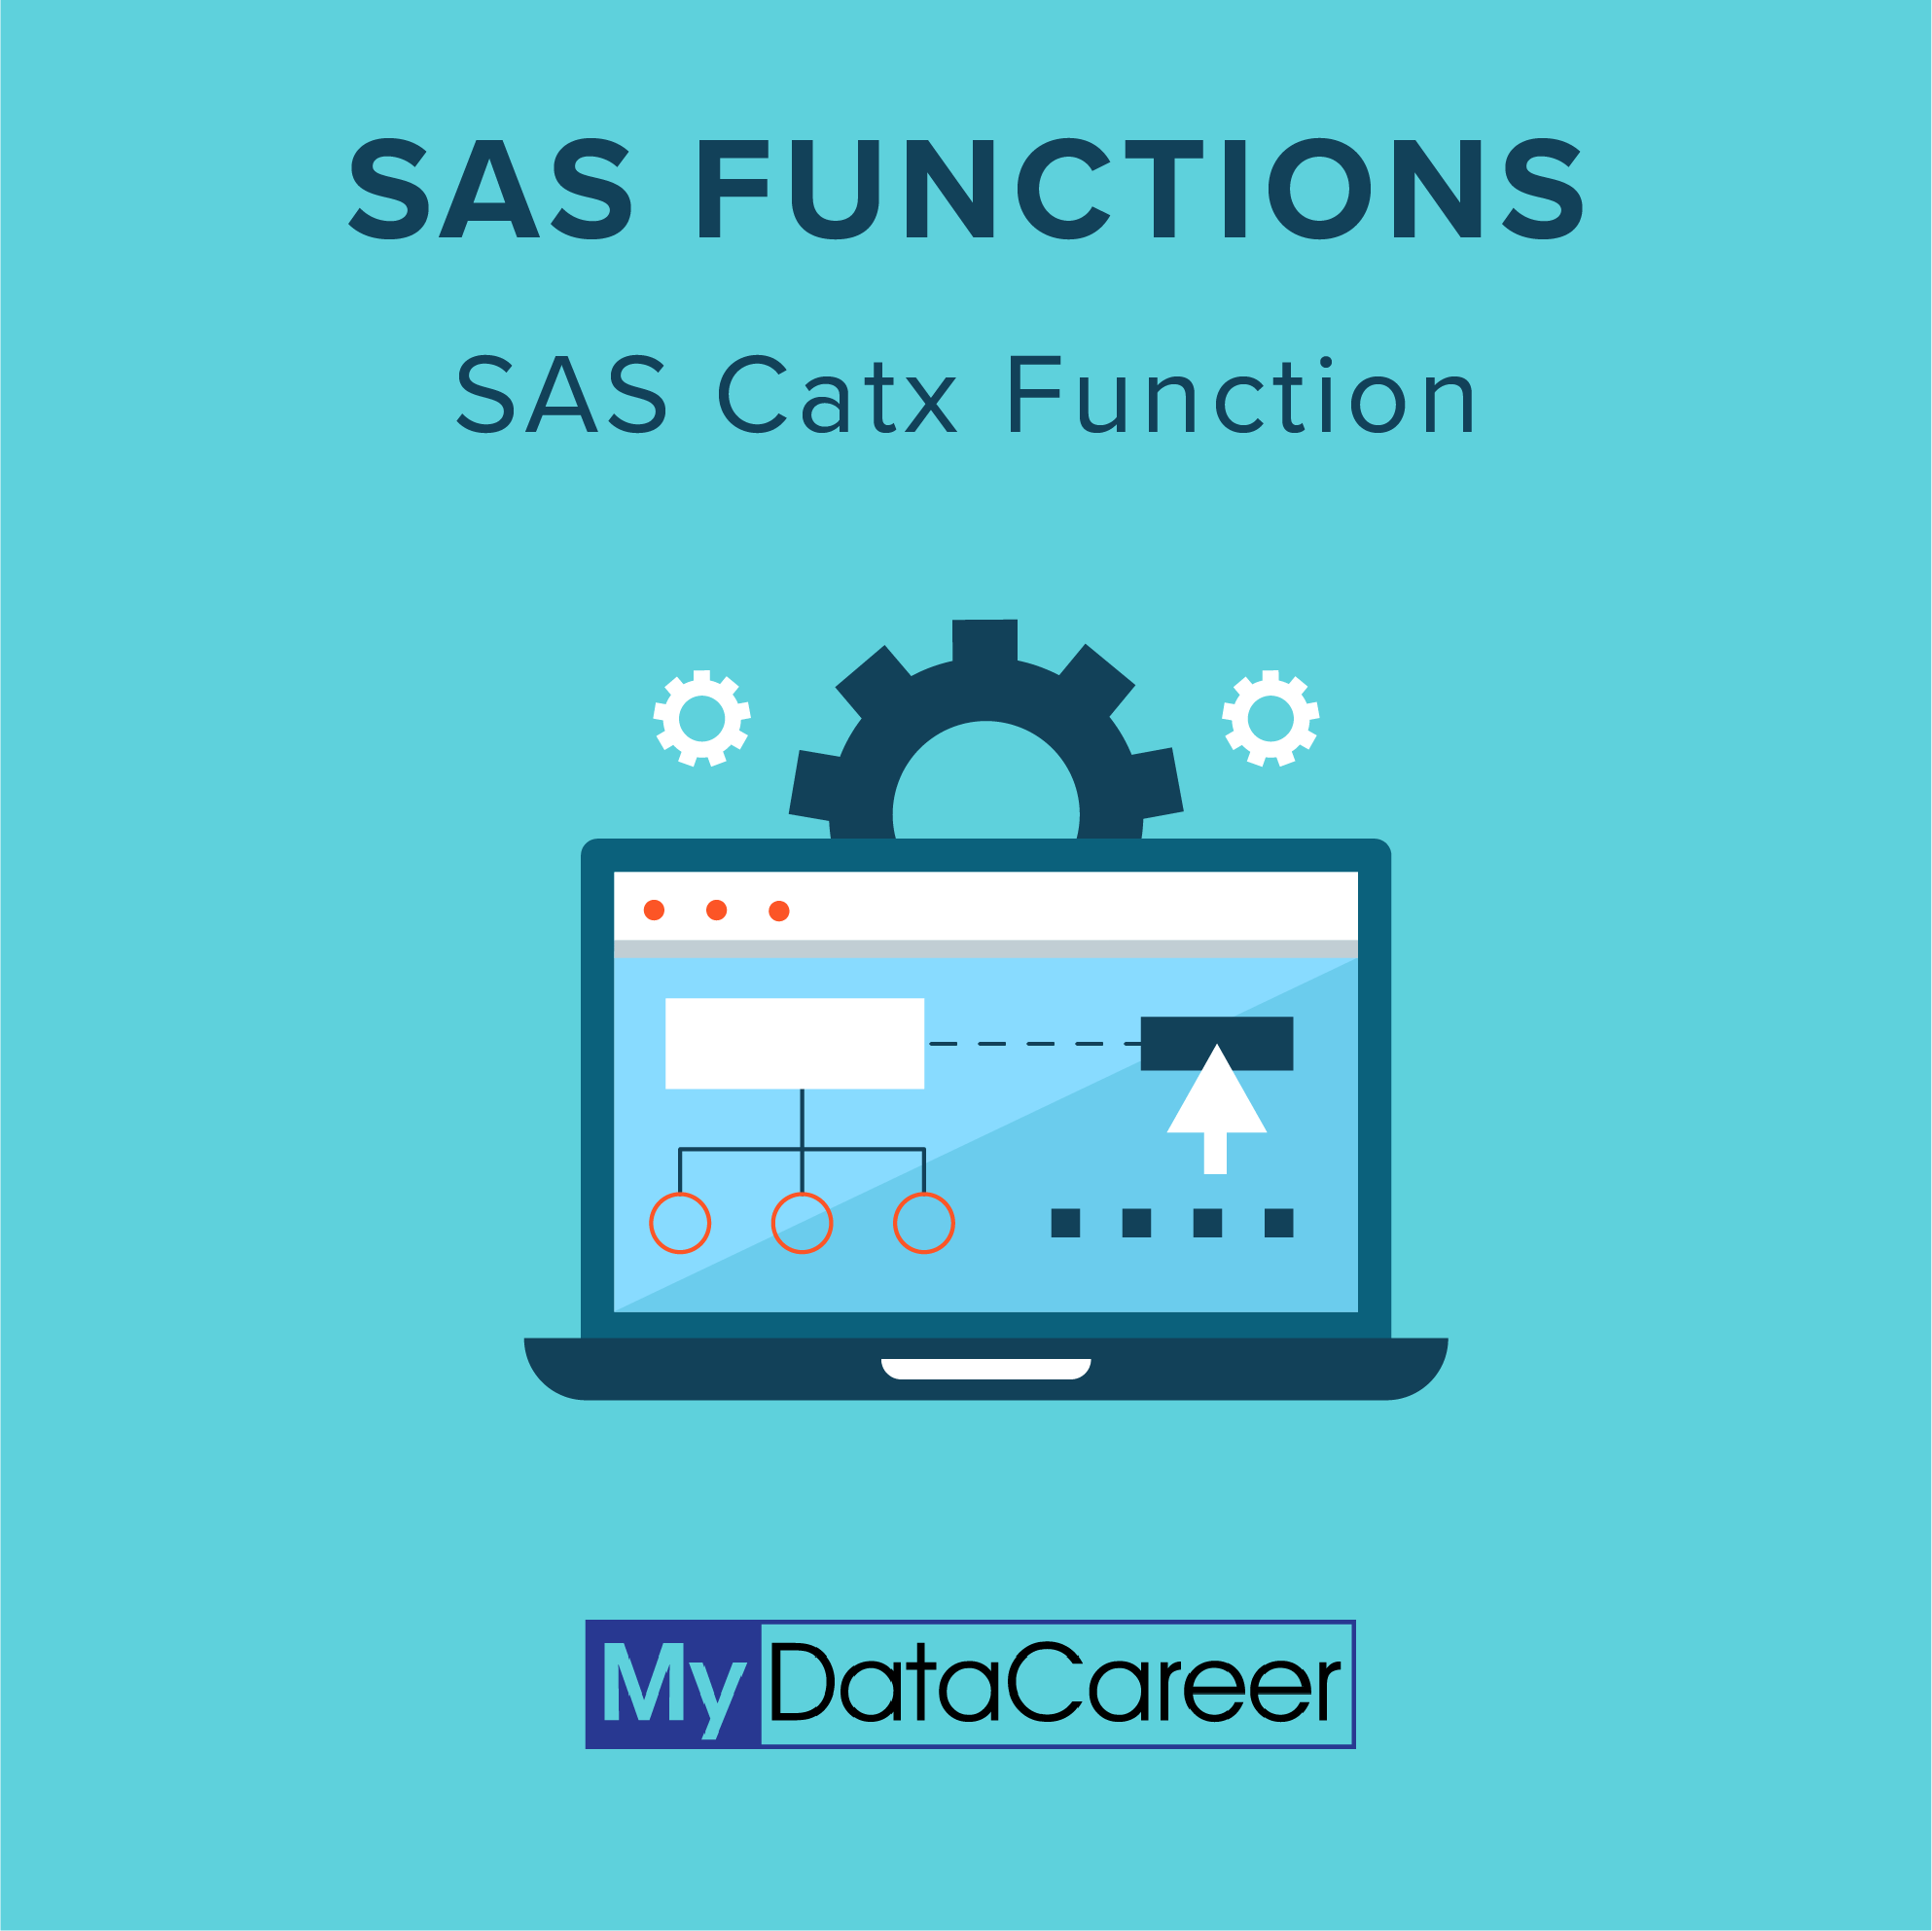 sas string functions, sas concatenate, sas catx,  catx, sas concat, sas cats, sas catt, sas cat function, sas concatenate function, cat string, sas concatenate string, catx function in sas example, concatenate in sas data step, concatenate function